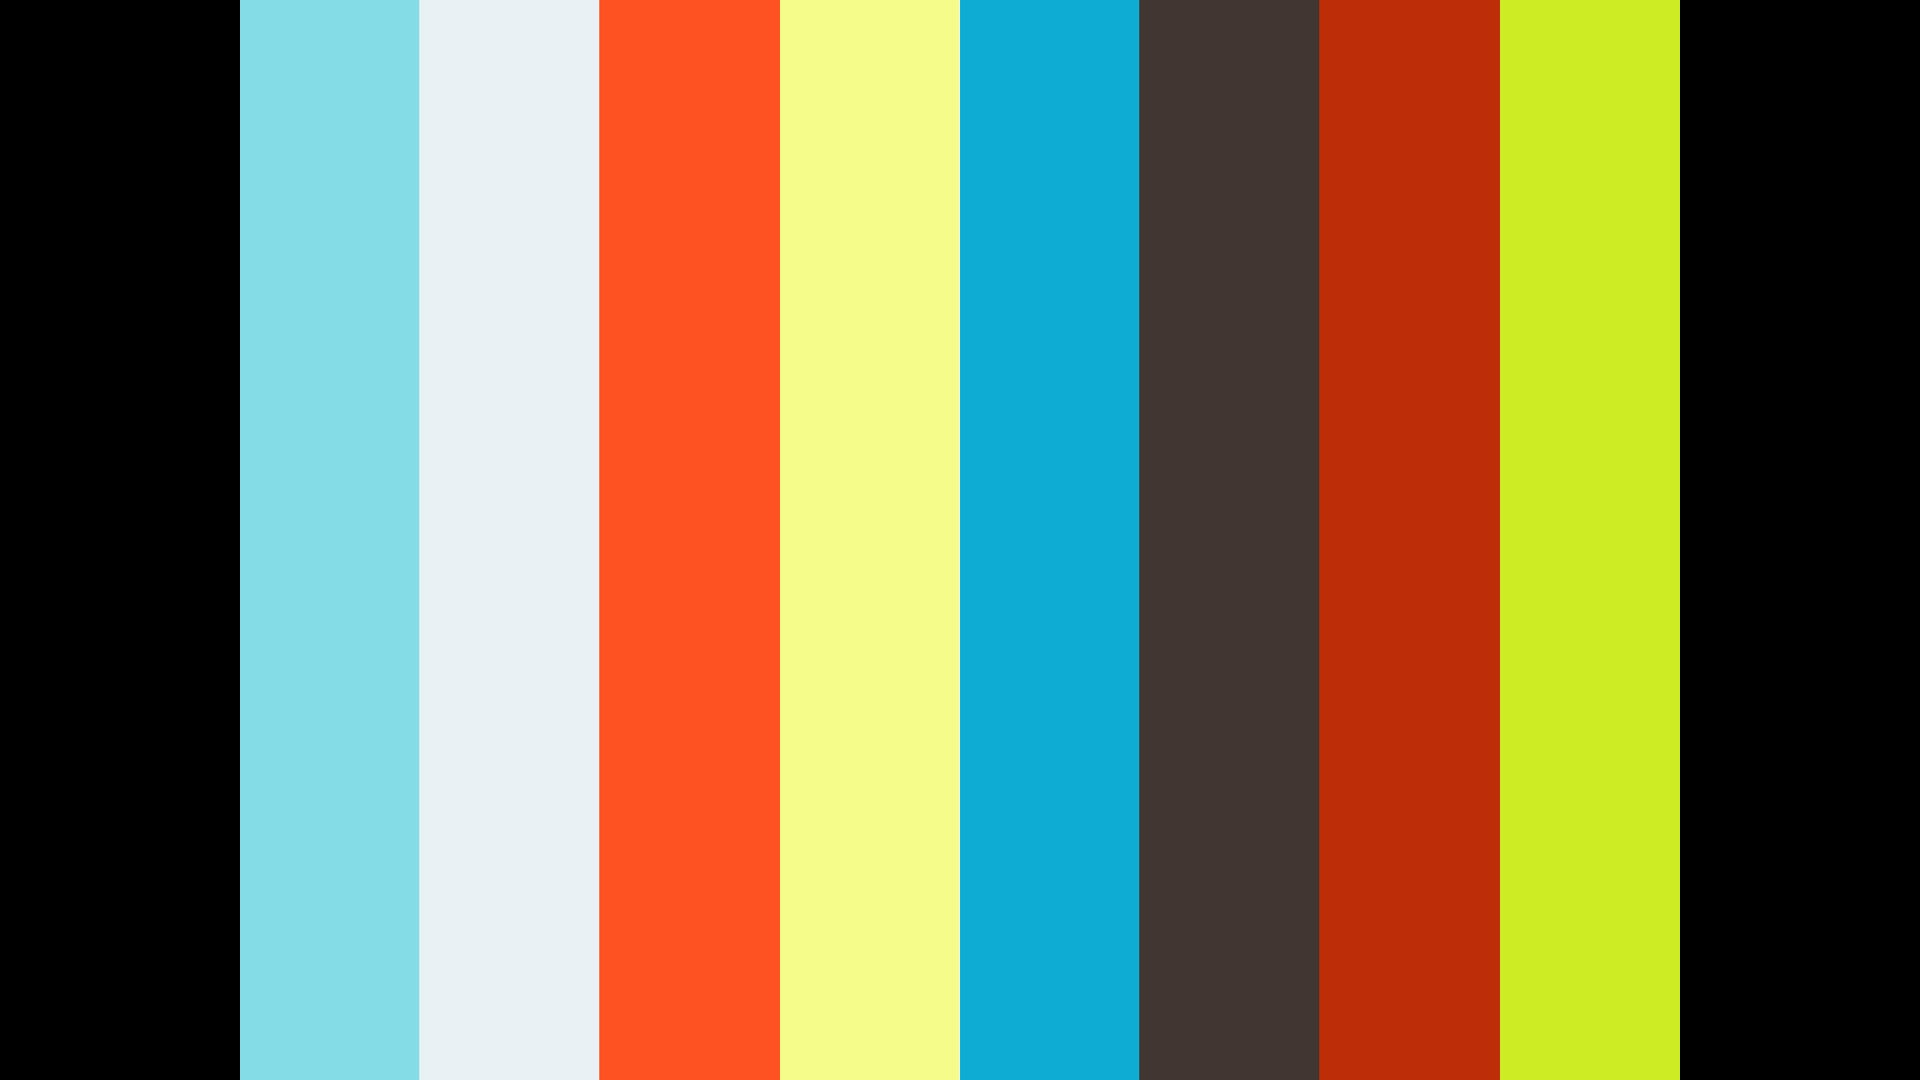 Response by Taraneh Fazeli (Panel I)